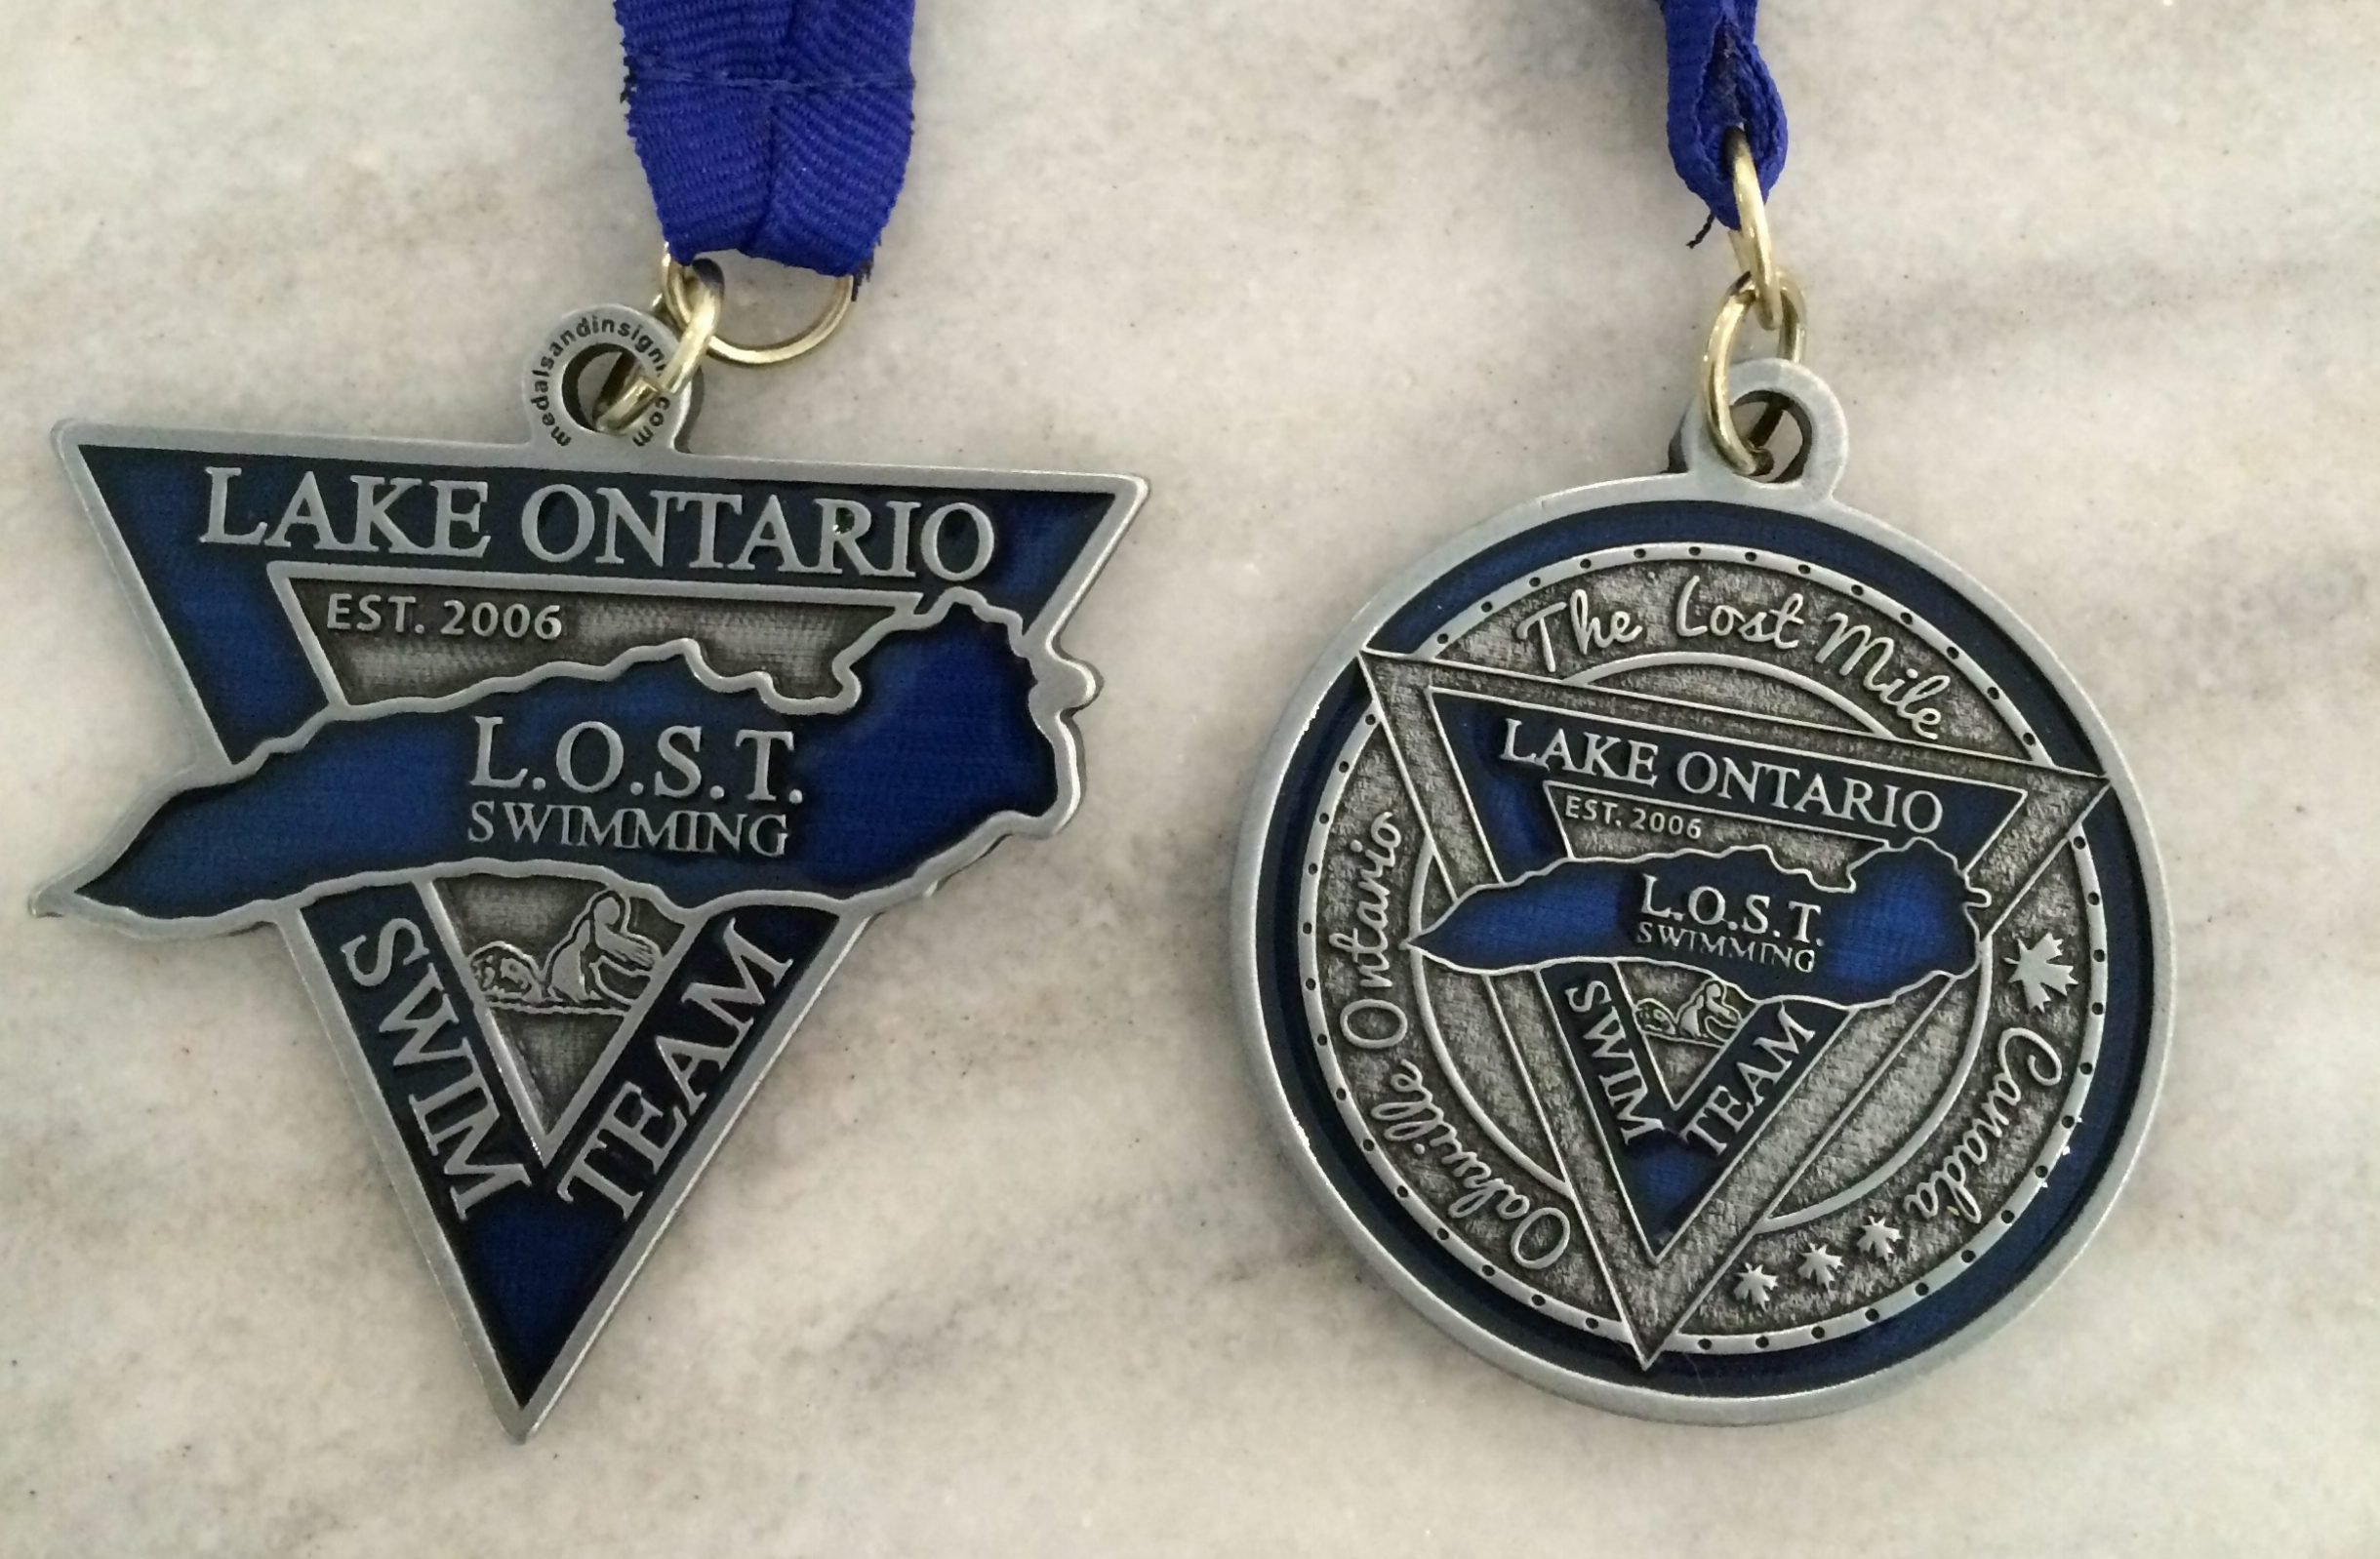 LOST Race and LOST Mile medals!